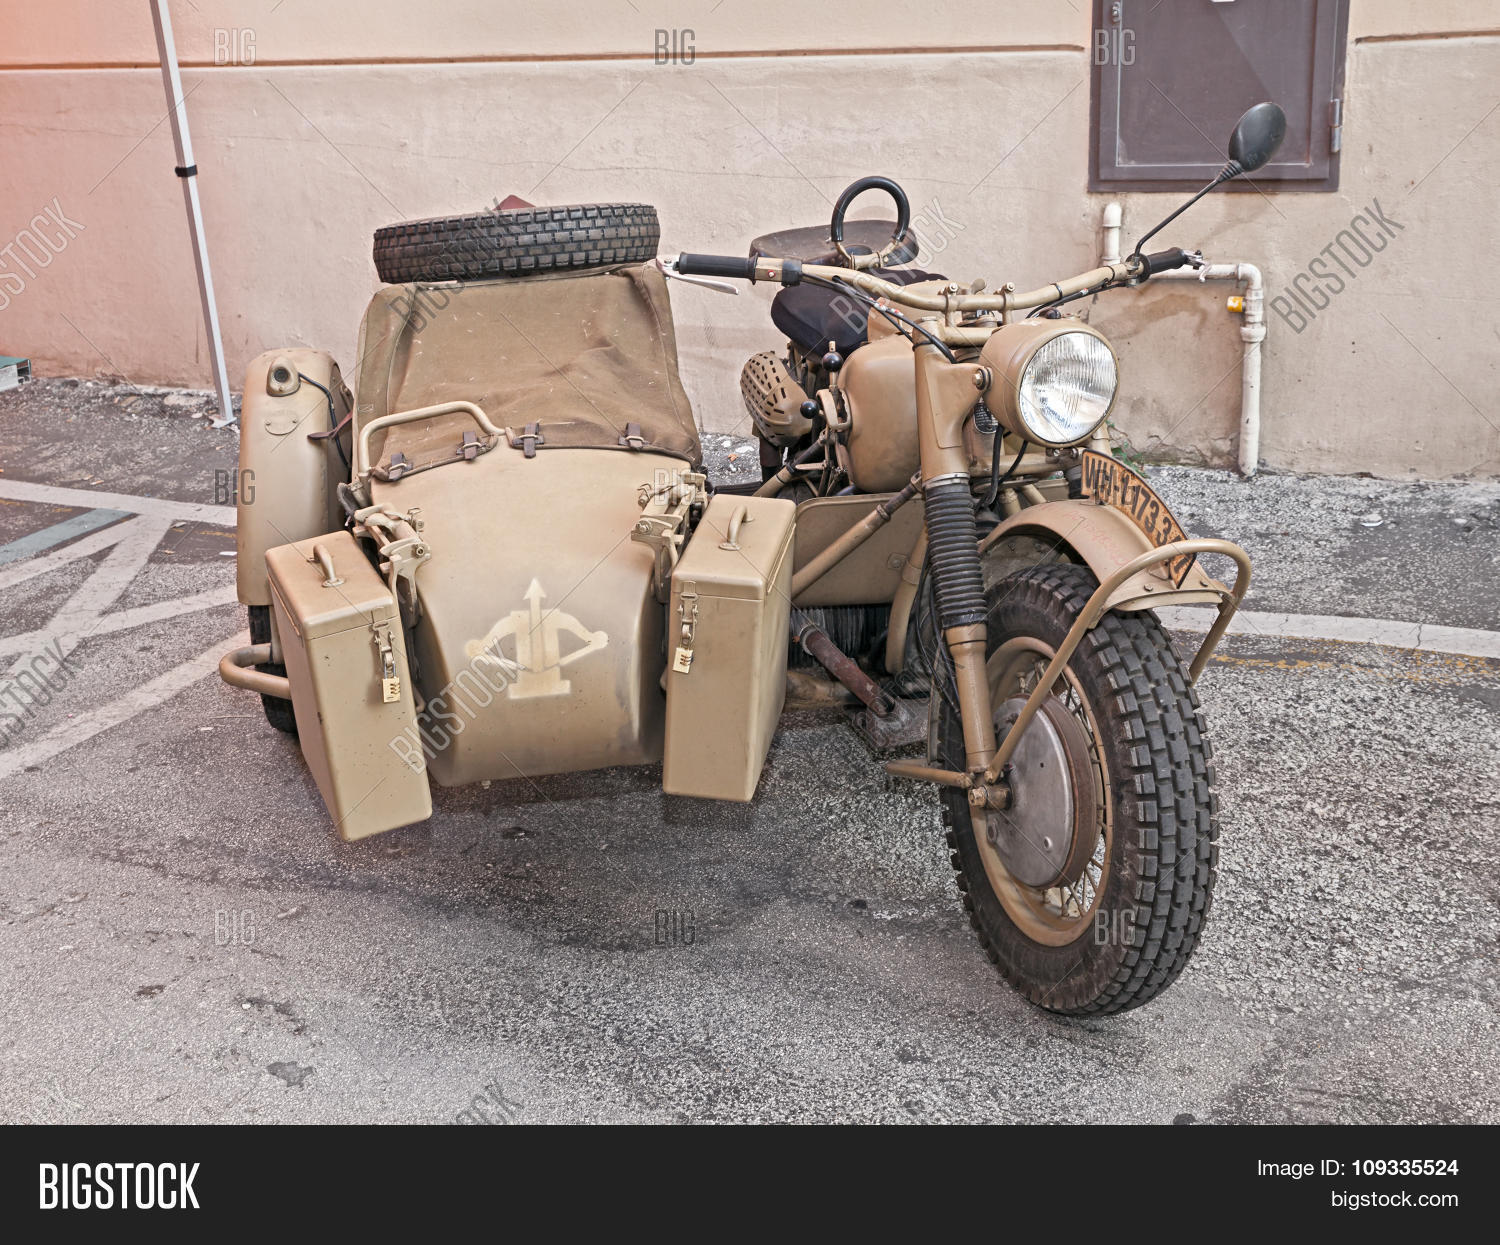 German Military Bike Image & Photo (Free Trial) | Bigstock